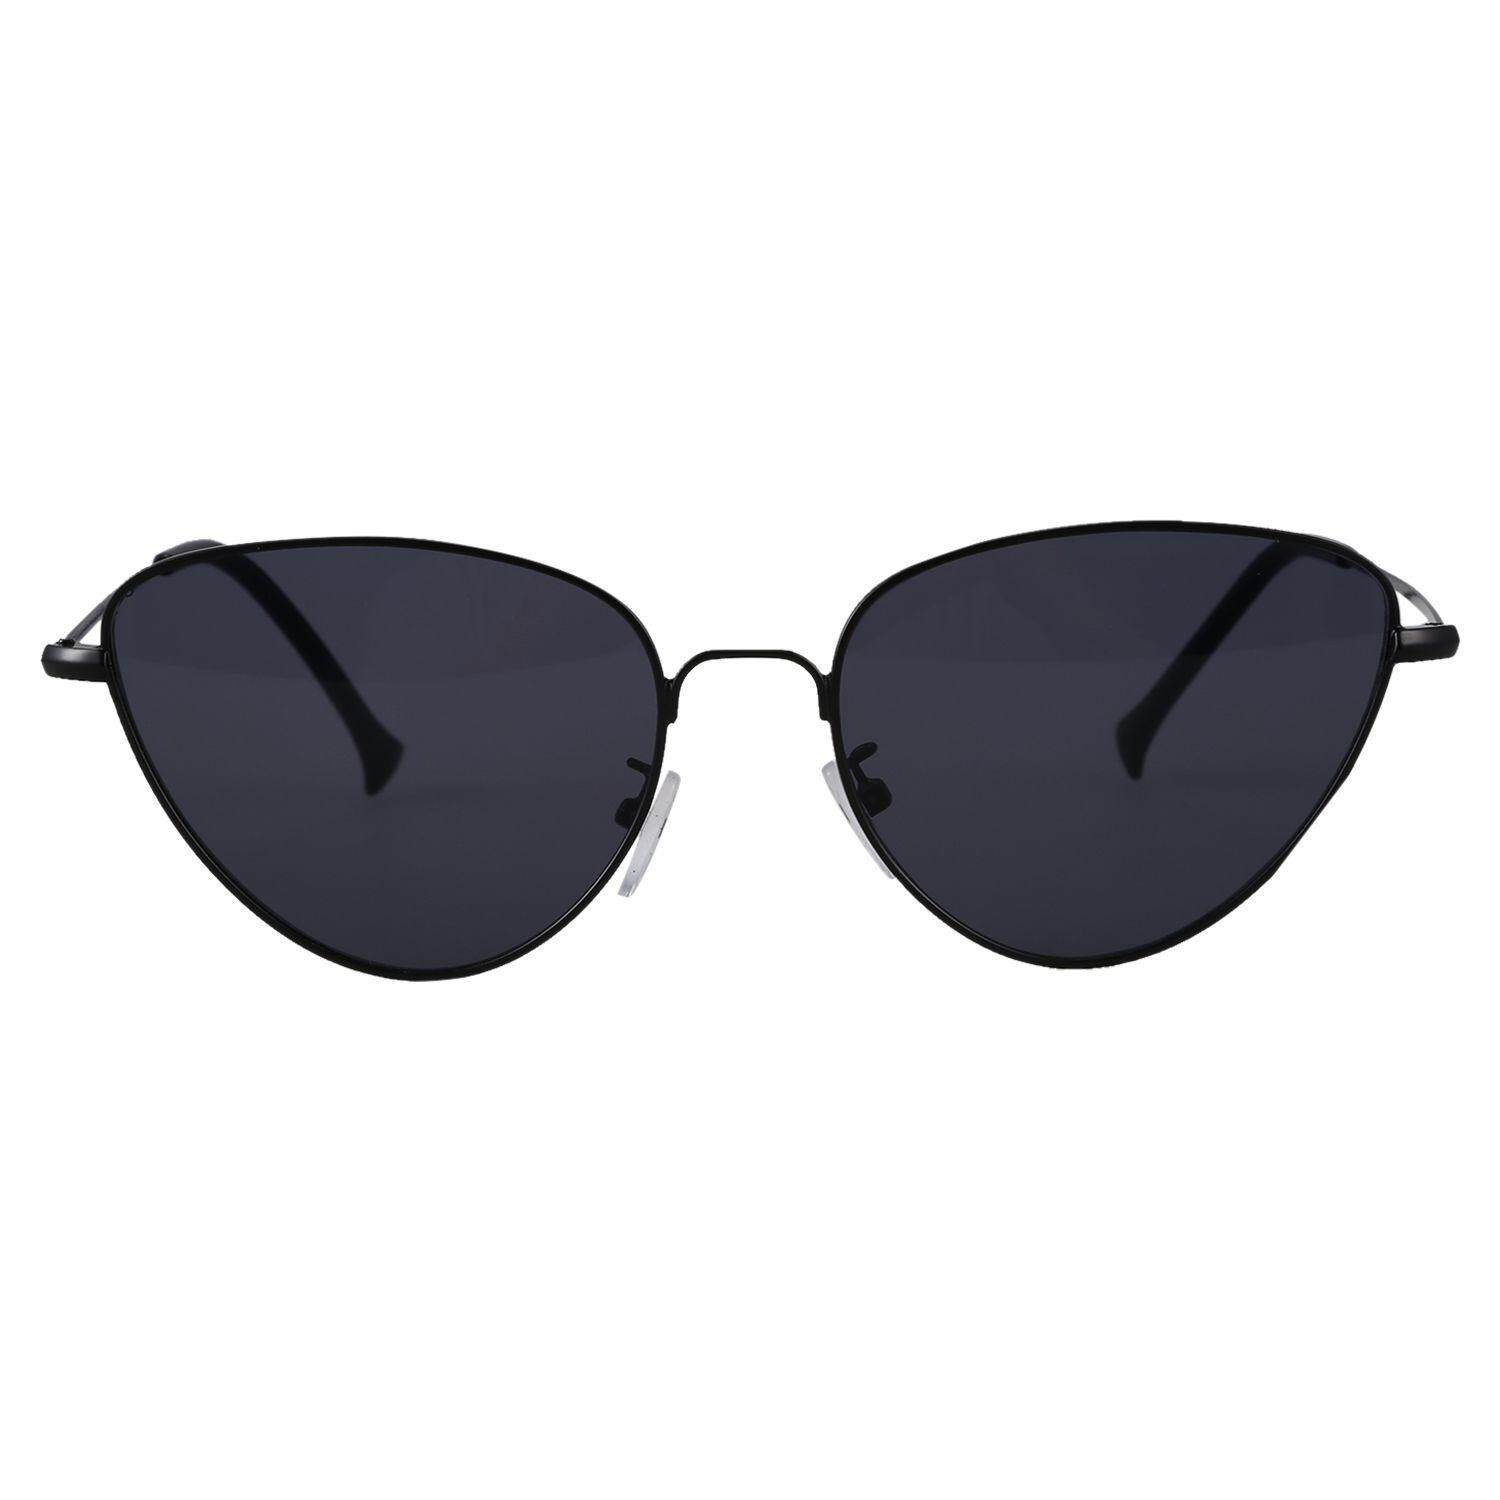 Summer style retro lady cat eye reflective sunglasses fashion neutral glasses S17011 Black